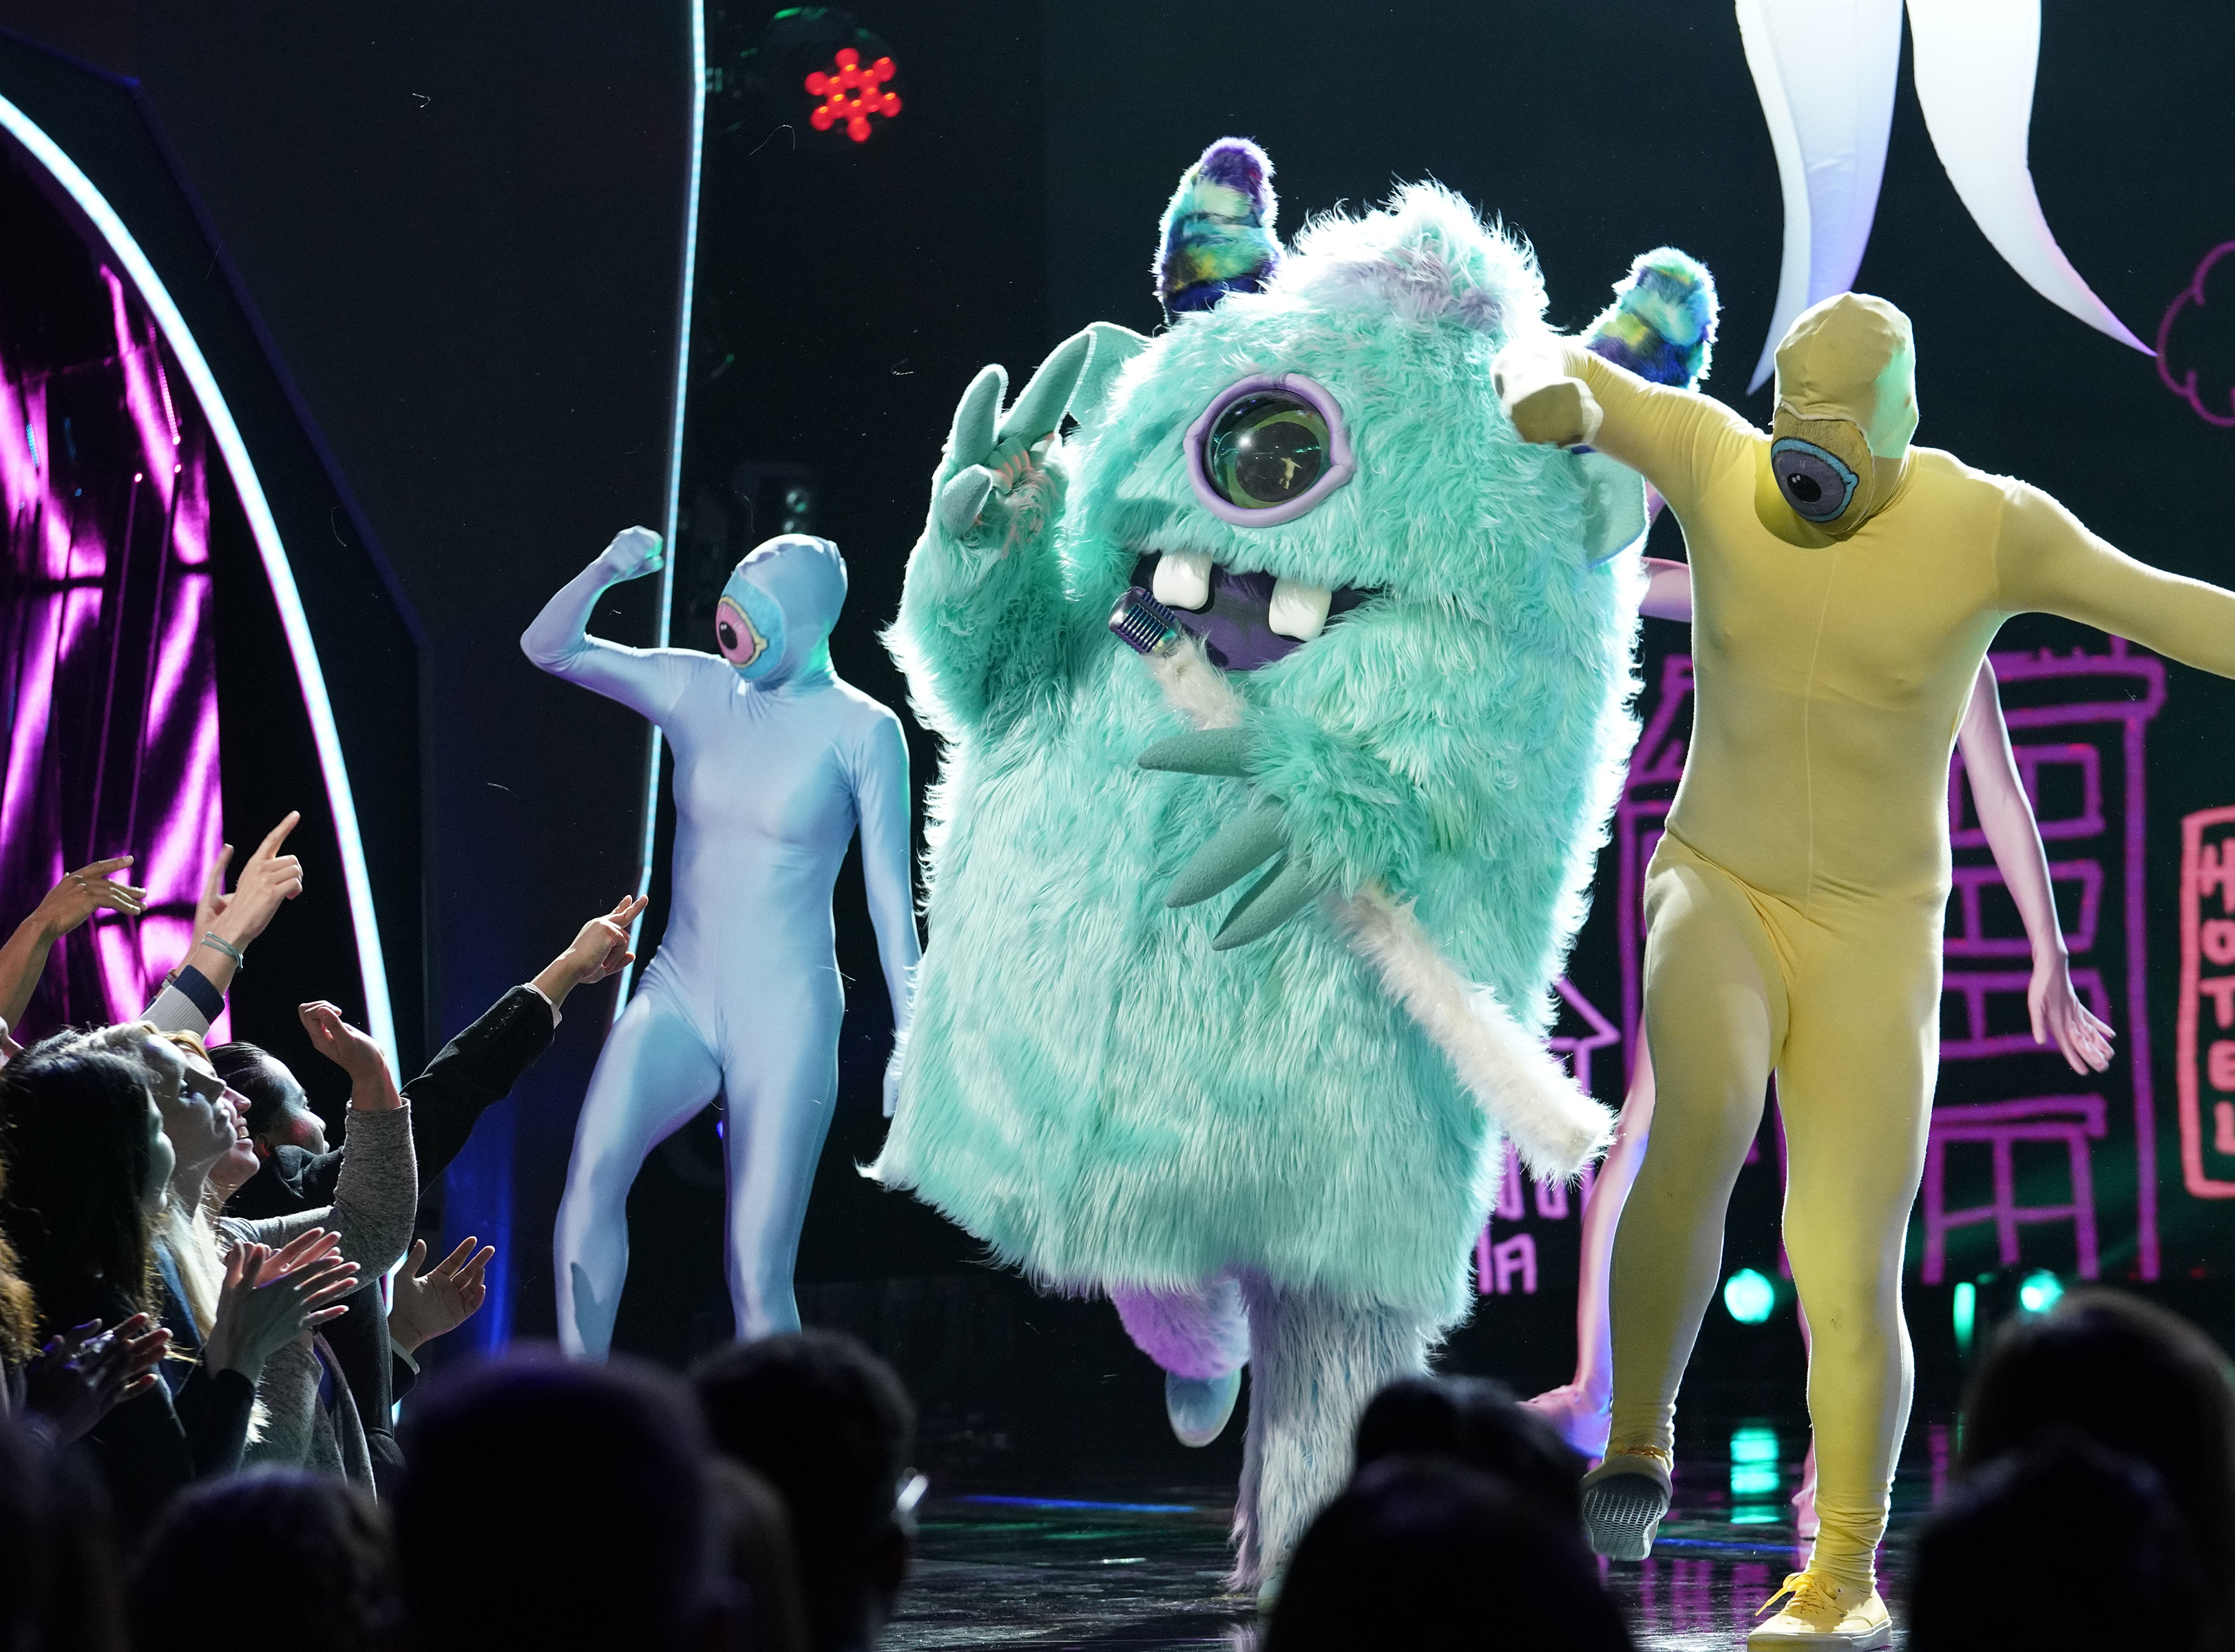 The Masked Singer': Tori Spelling is the Unicorn  Who are